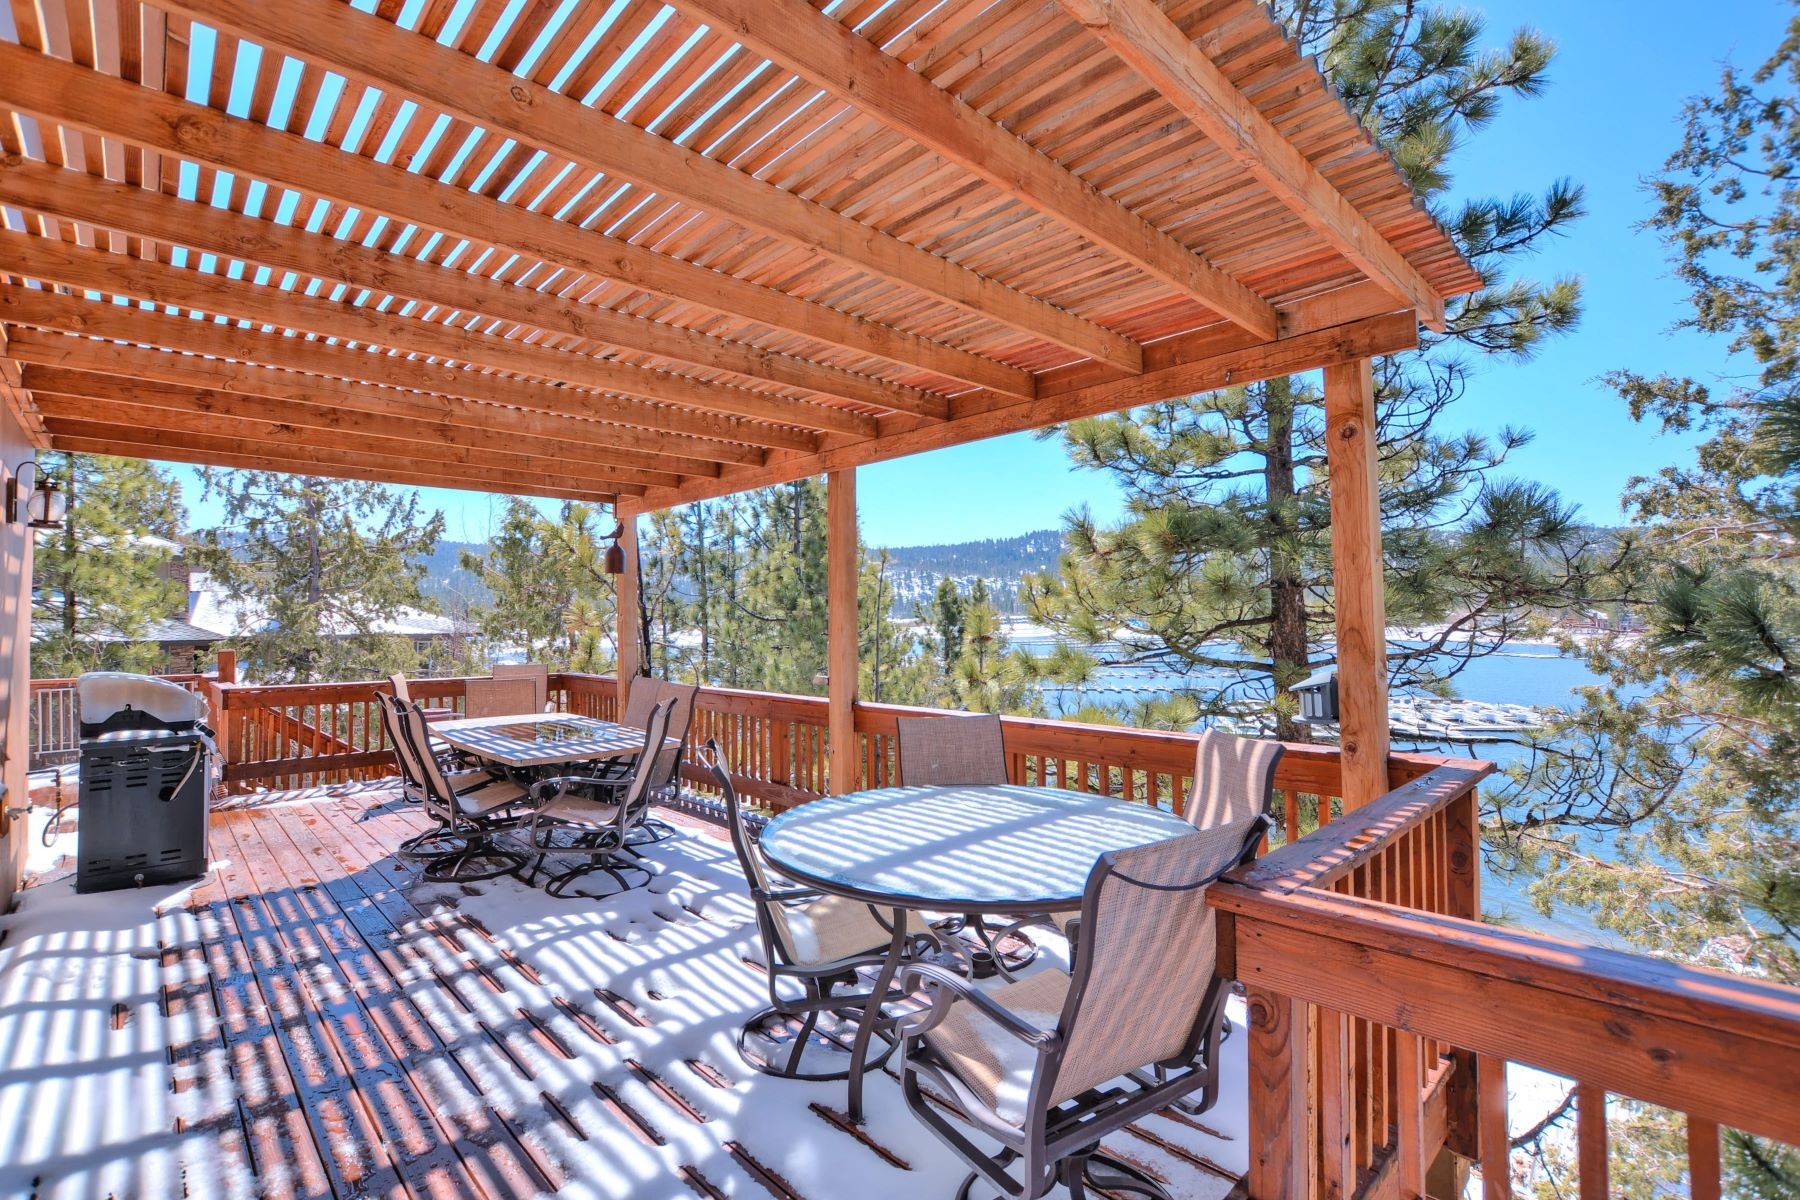 Single Family Home for Sale at 39569 Lake 39569 Lake Drive Big Bear Lake, California 92315 United States